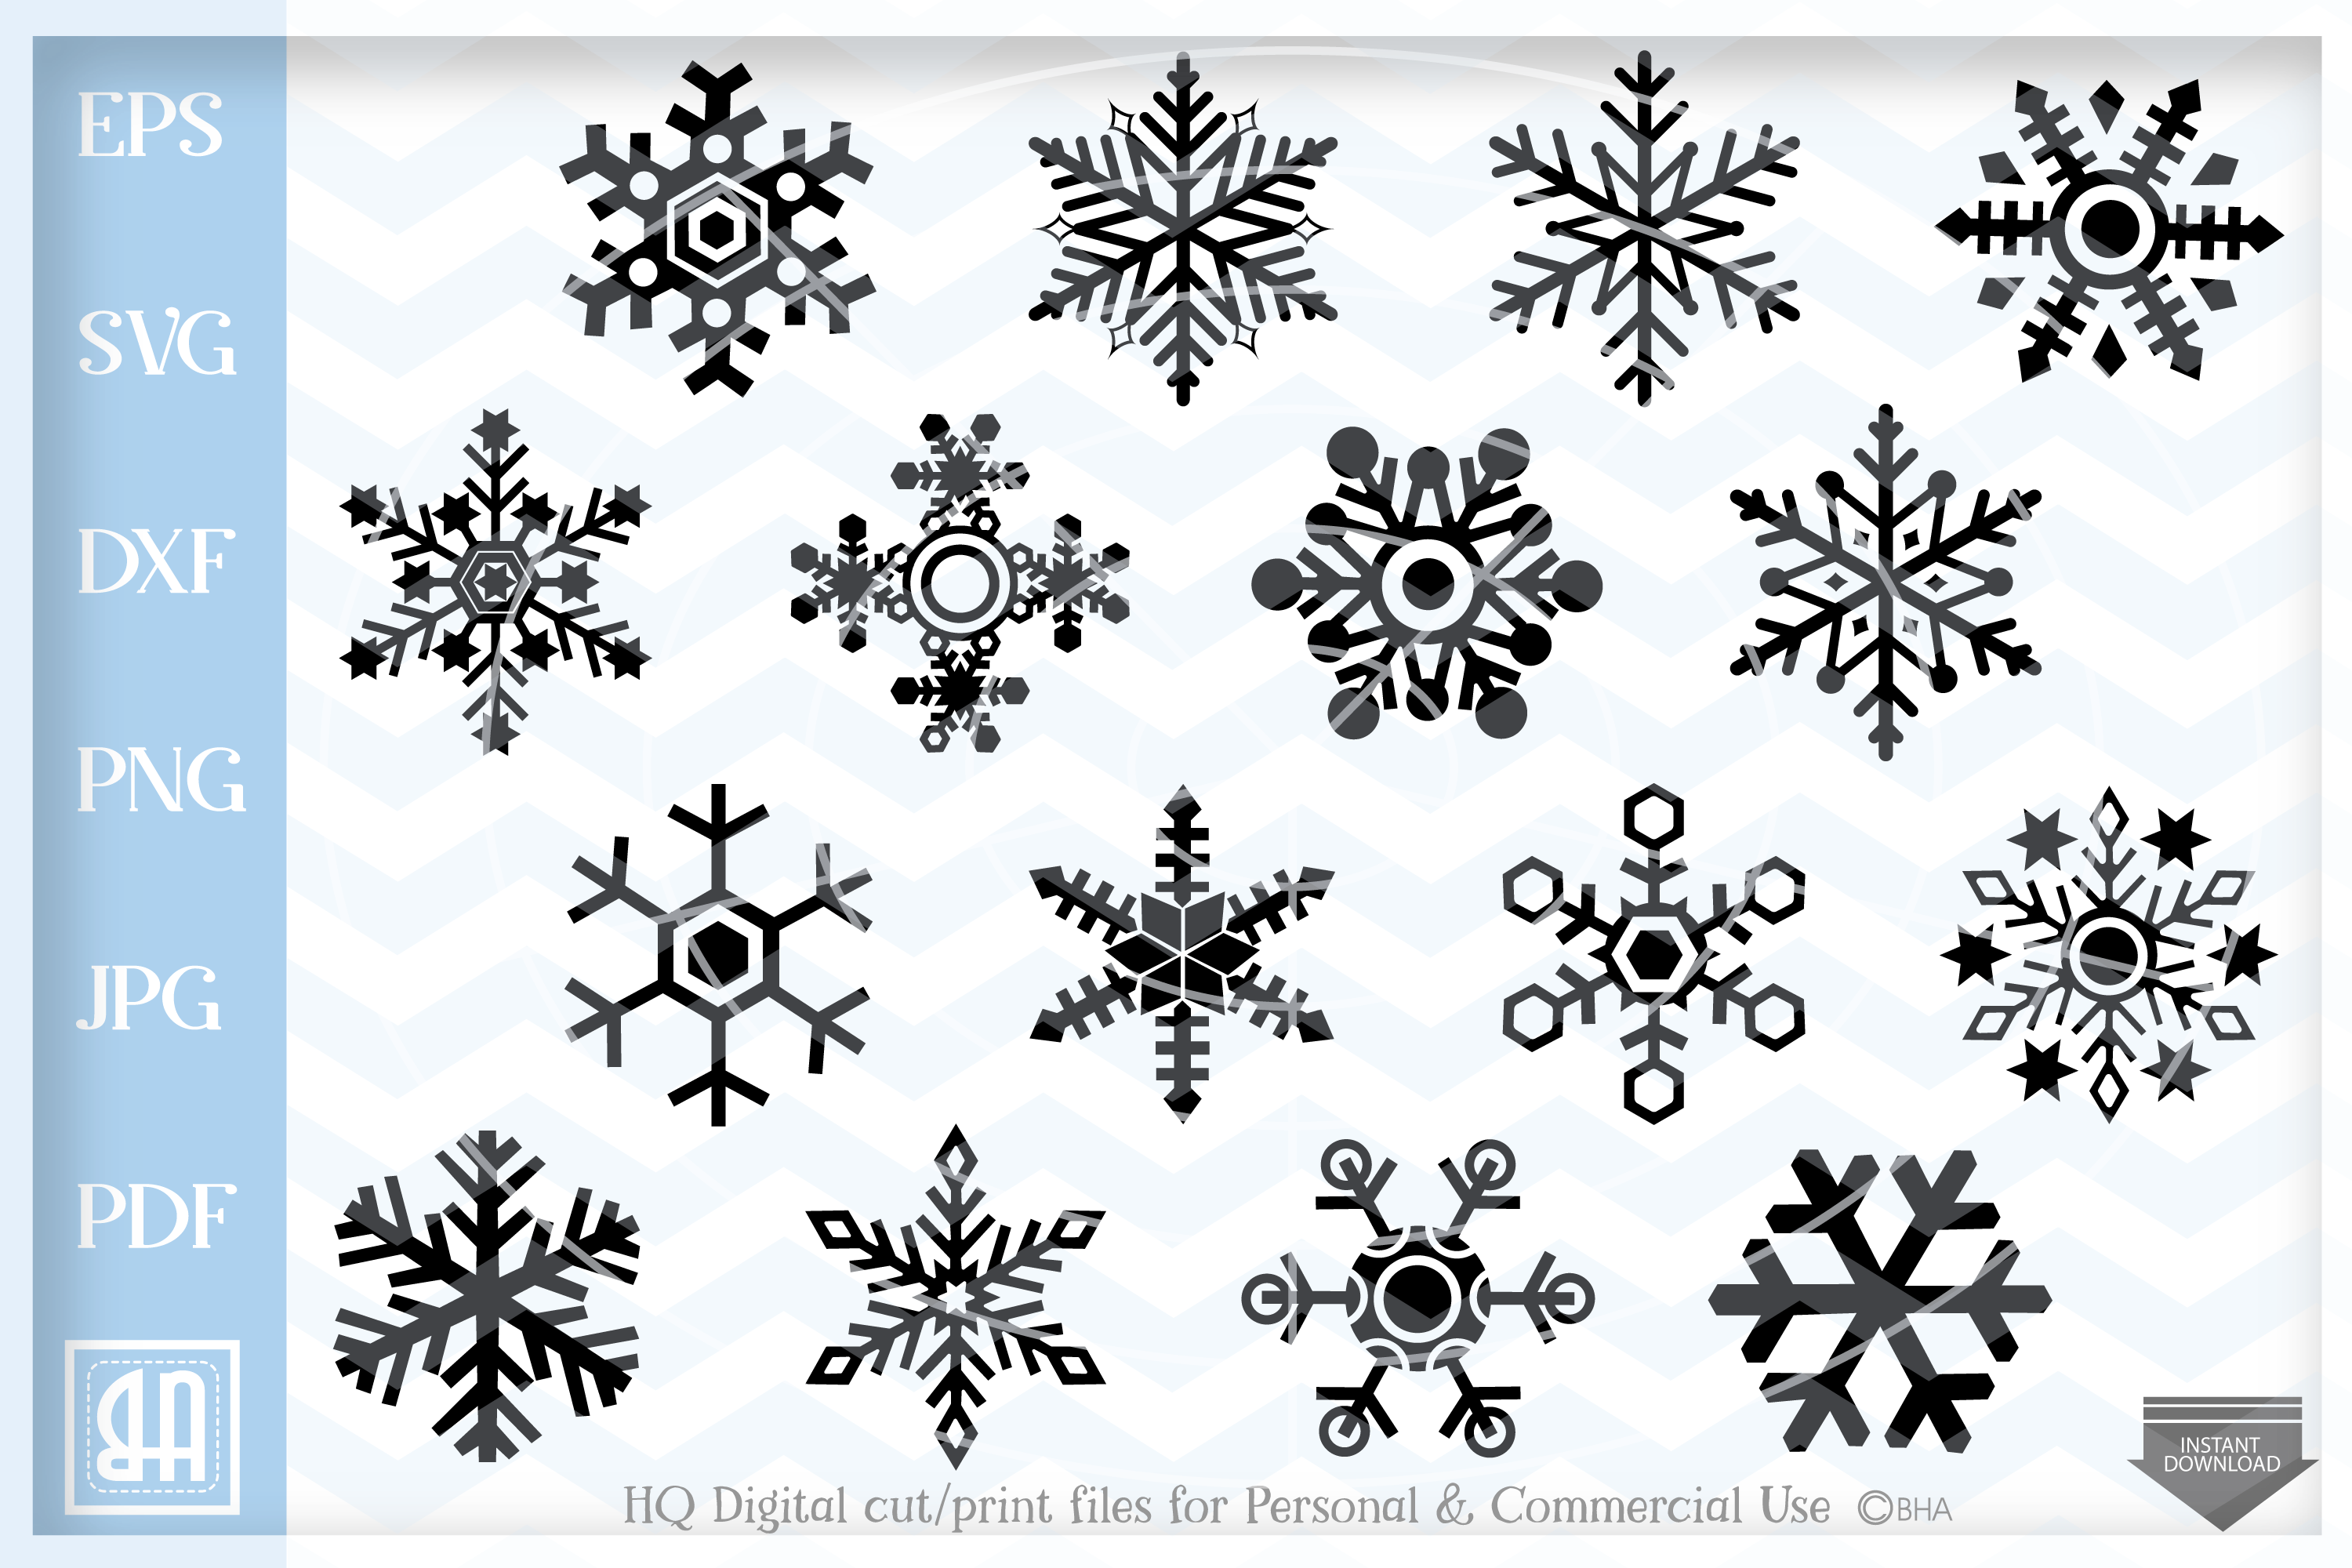 Snowflakes Svg Snowflake Svg Christmas Bundle Svg Example Image 1 Christmas Svg Winter Clipart Free Svg